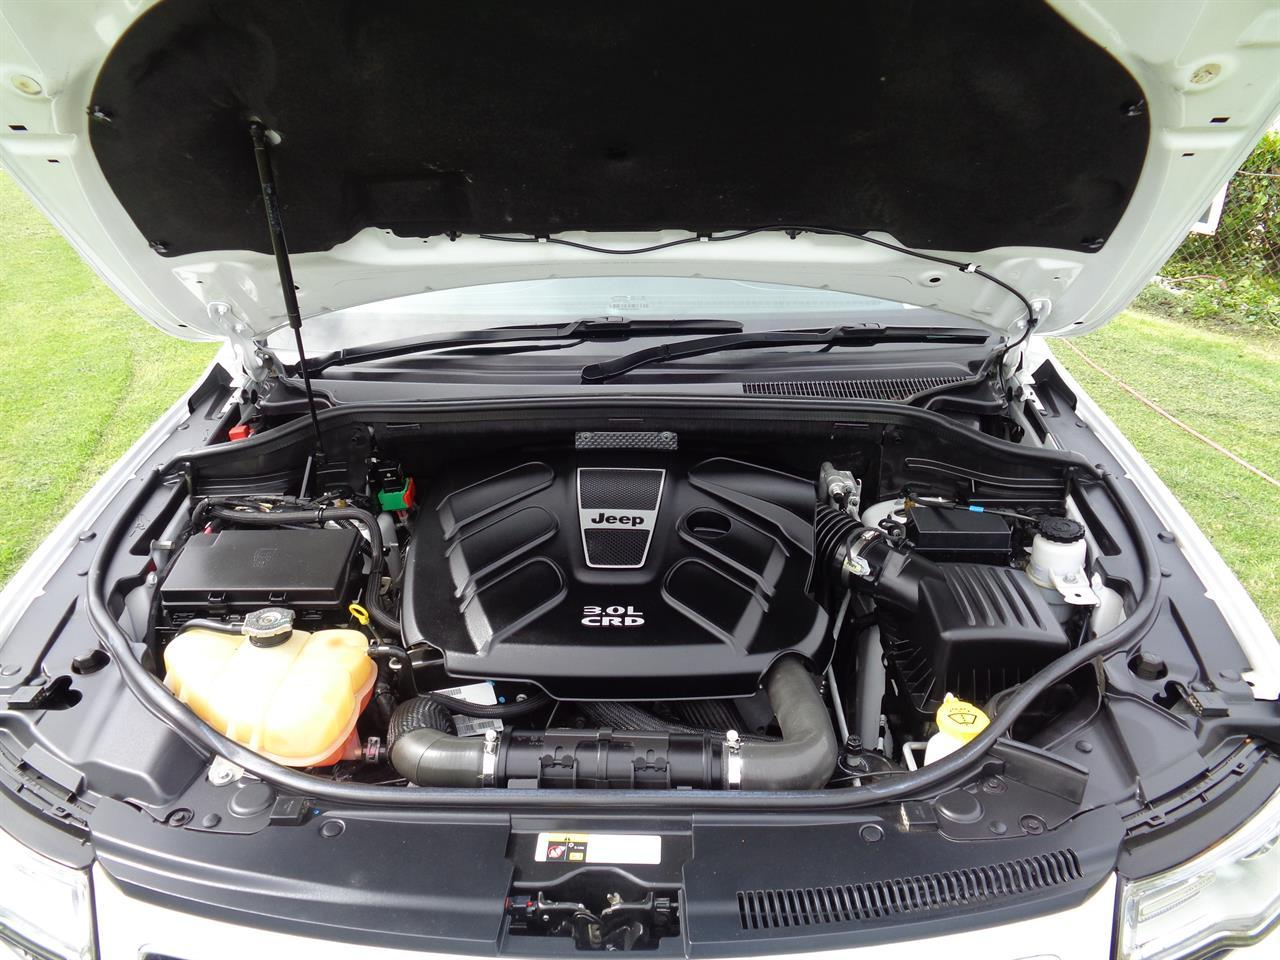 image-13, 2013 Jeep Grand Cherokee 3.0L V6 CRD OVERLAND at Christchurch